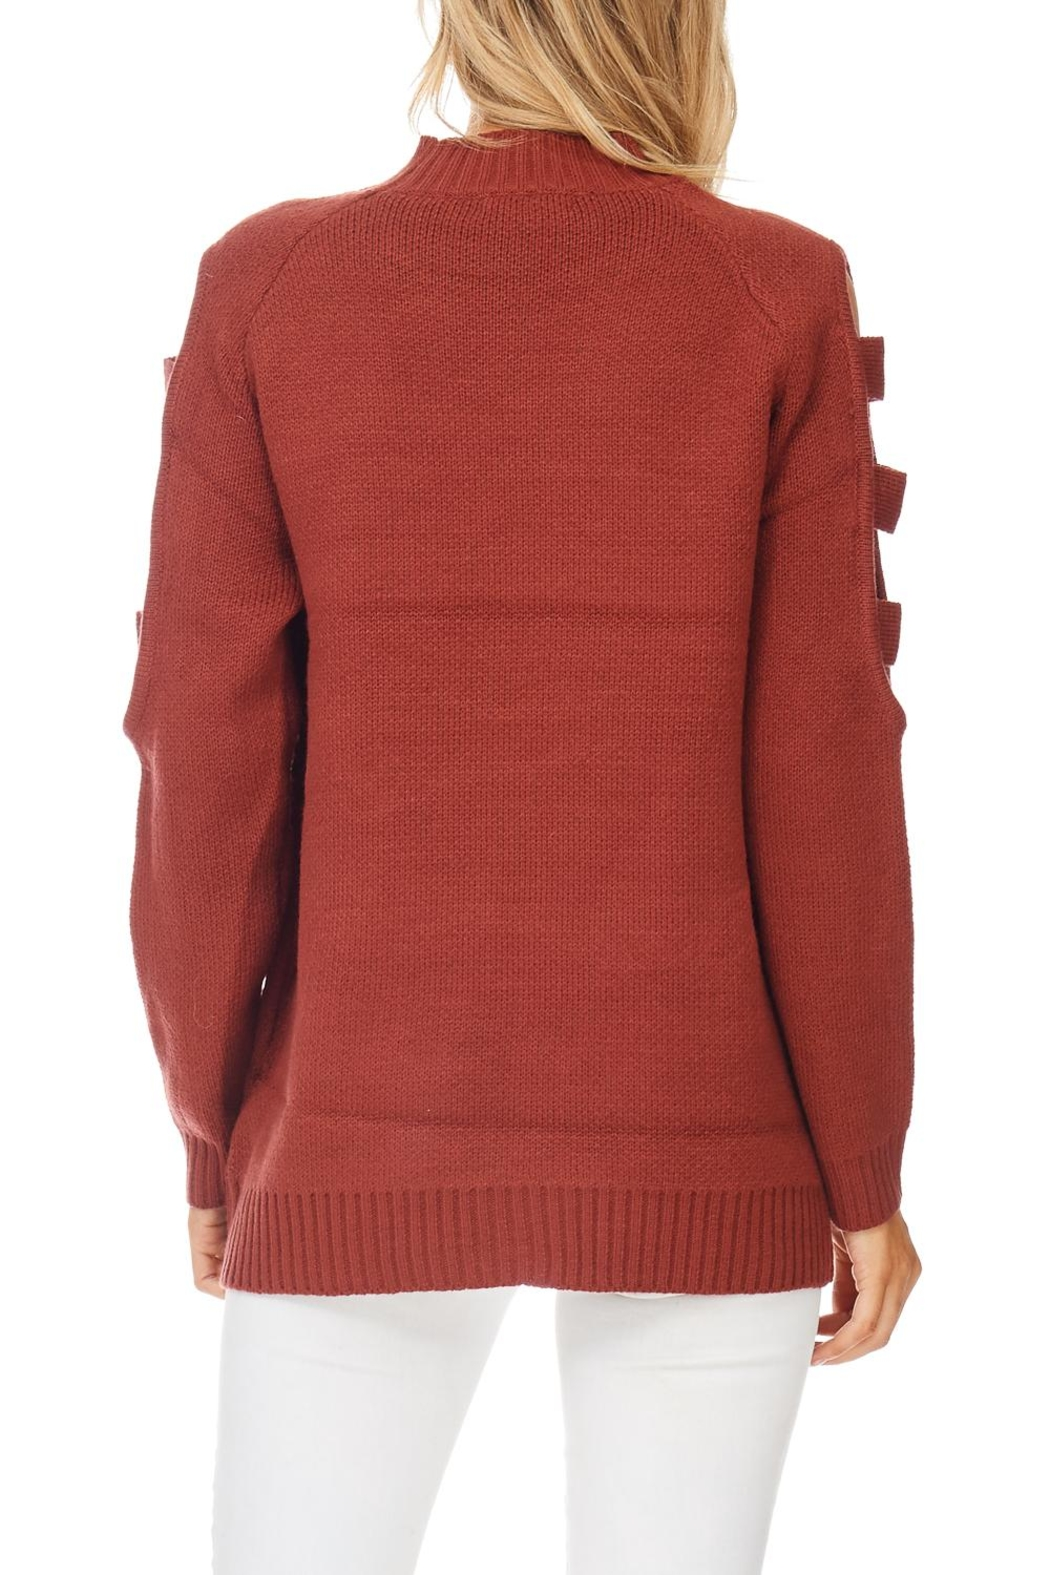 LoveRiche Brick Cut-Out Sweater - Front Full Image